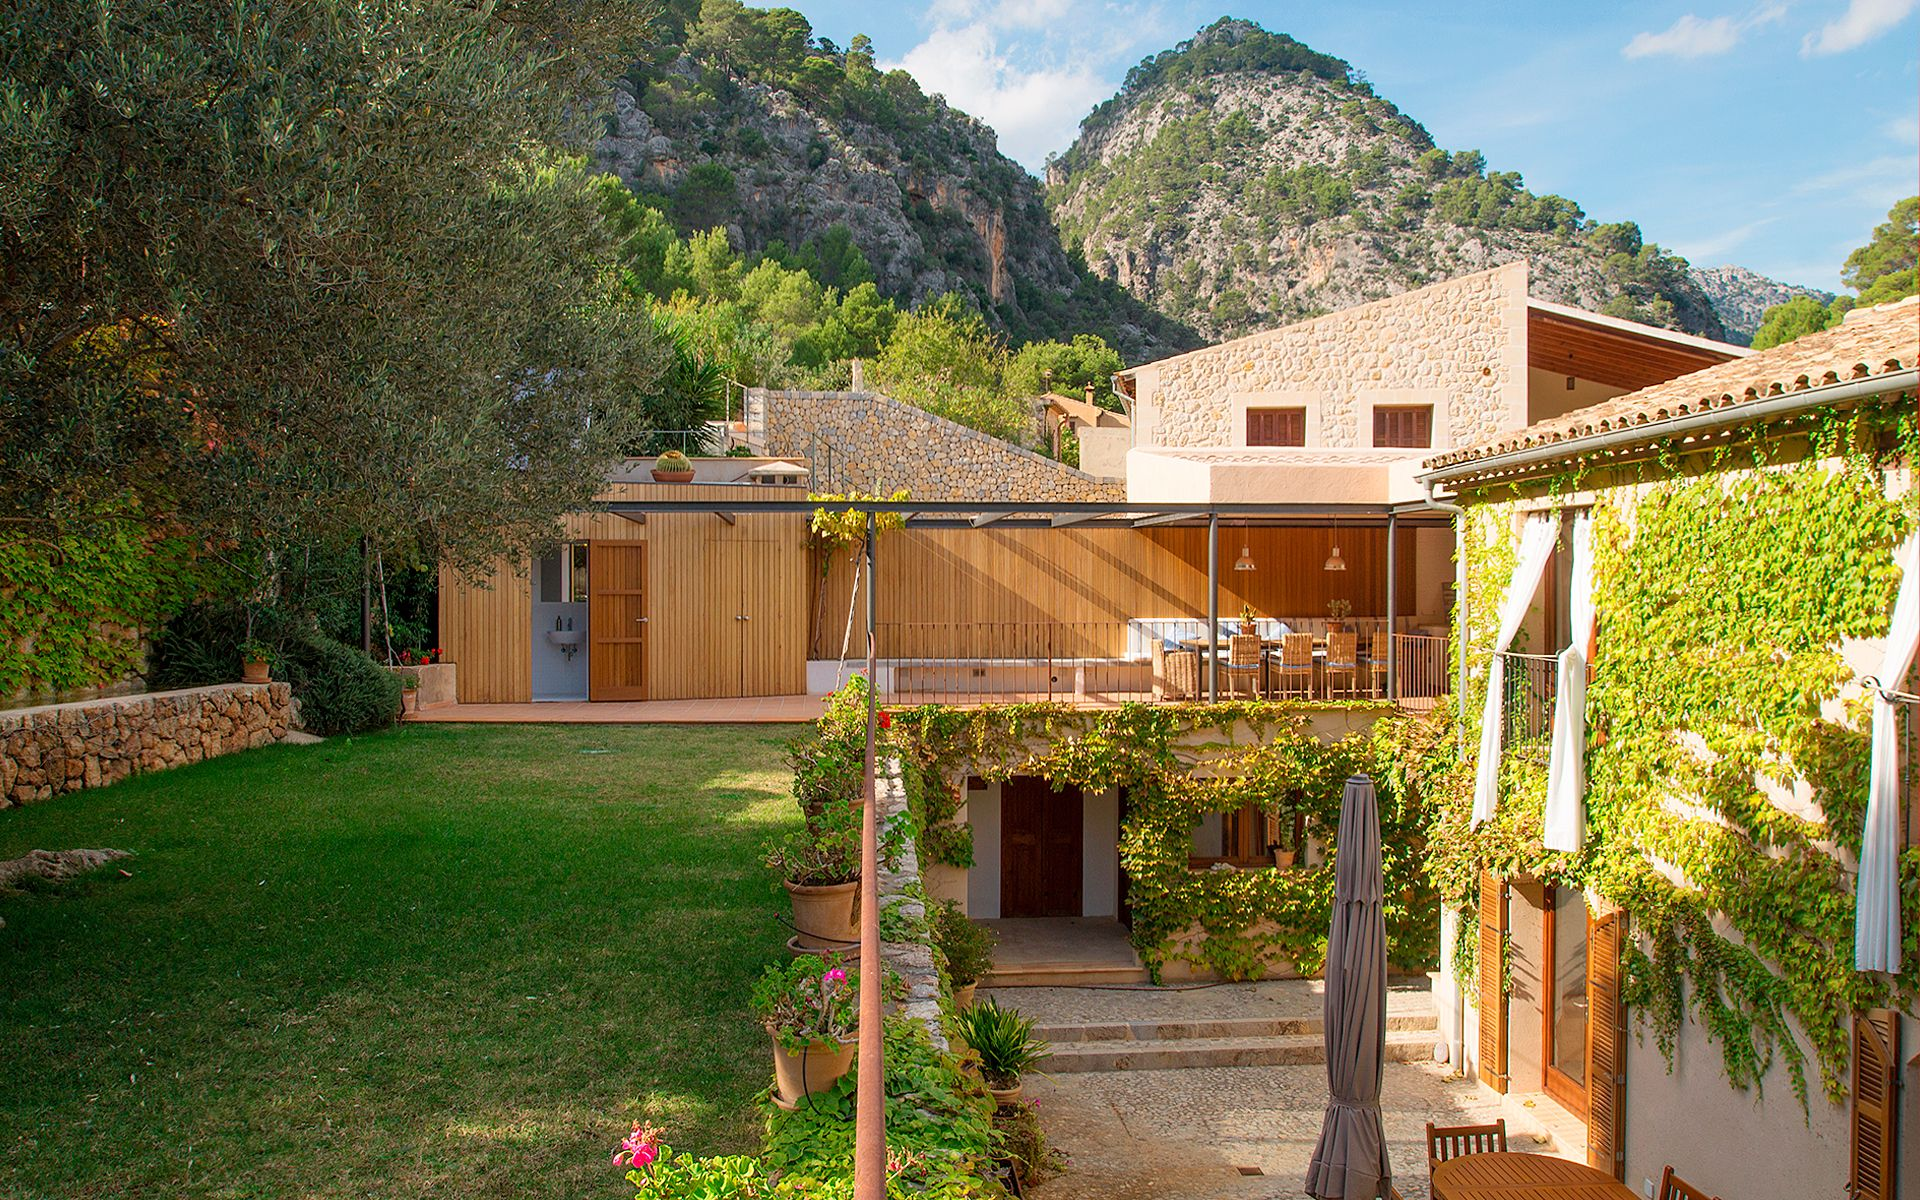 http://www.mallorcarealtors.com/property/amazing-family-house-in-the ...